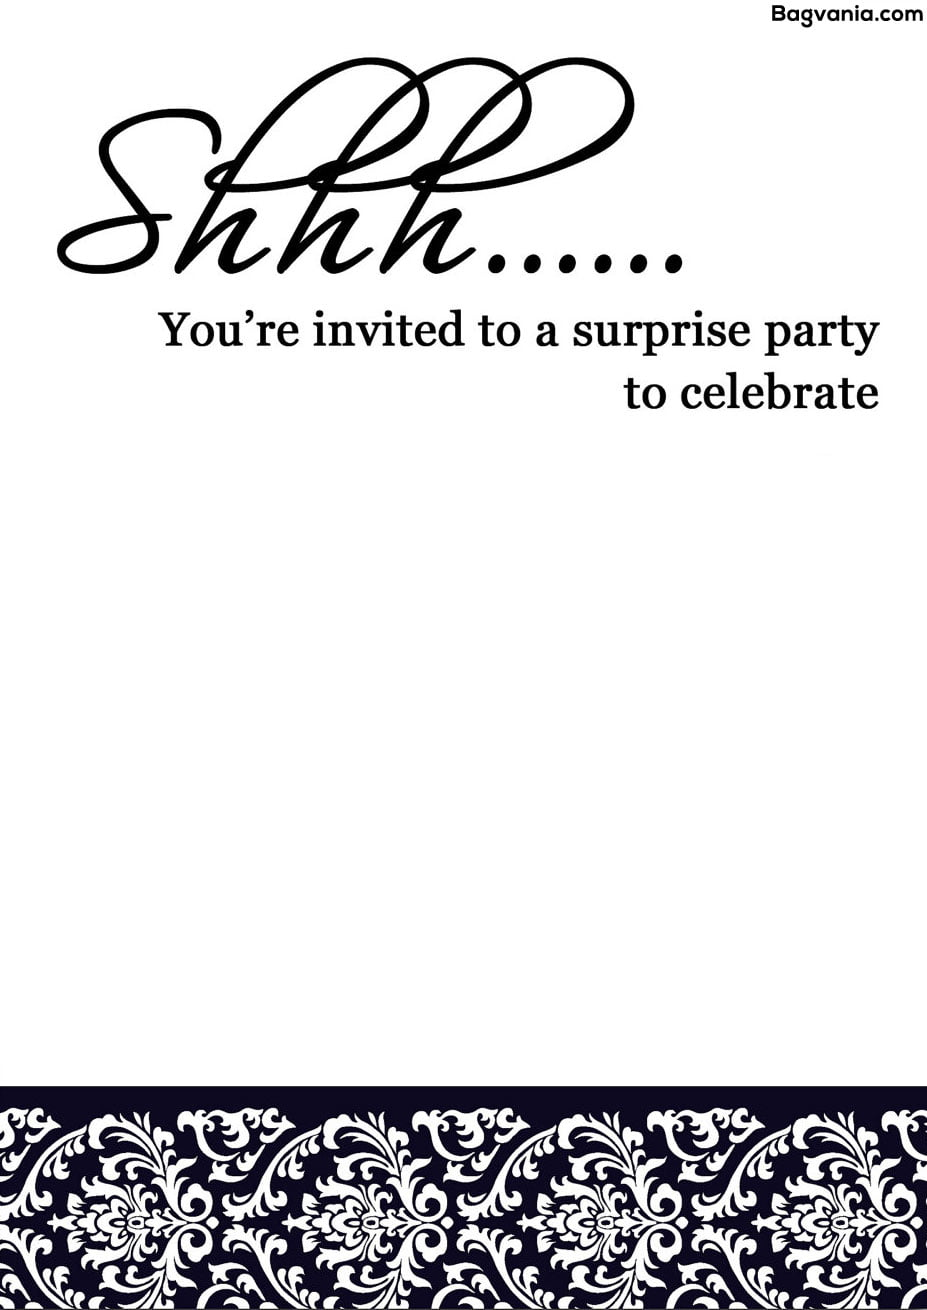 Free printable surprise birthday invitations bagvania free after giving the birthday invitations the next step is thinking about the decoration balloons would be amazing to be put on the room filmwisefo Images